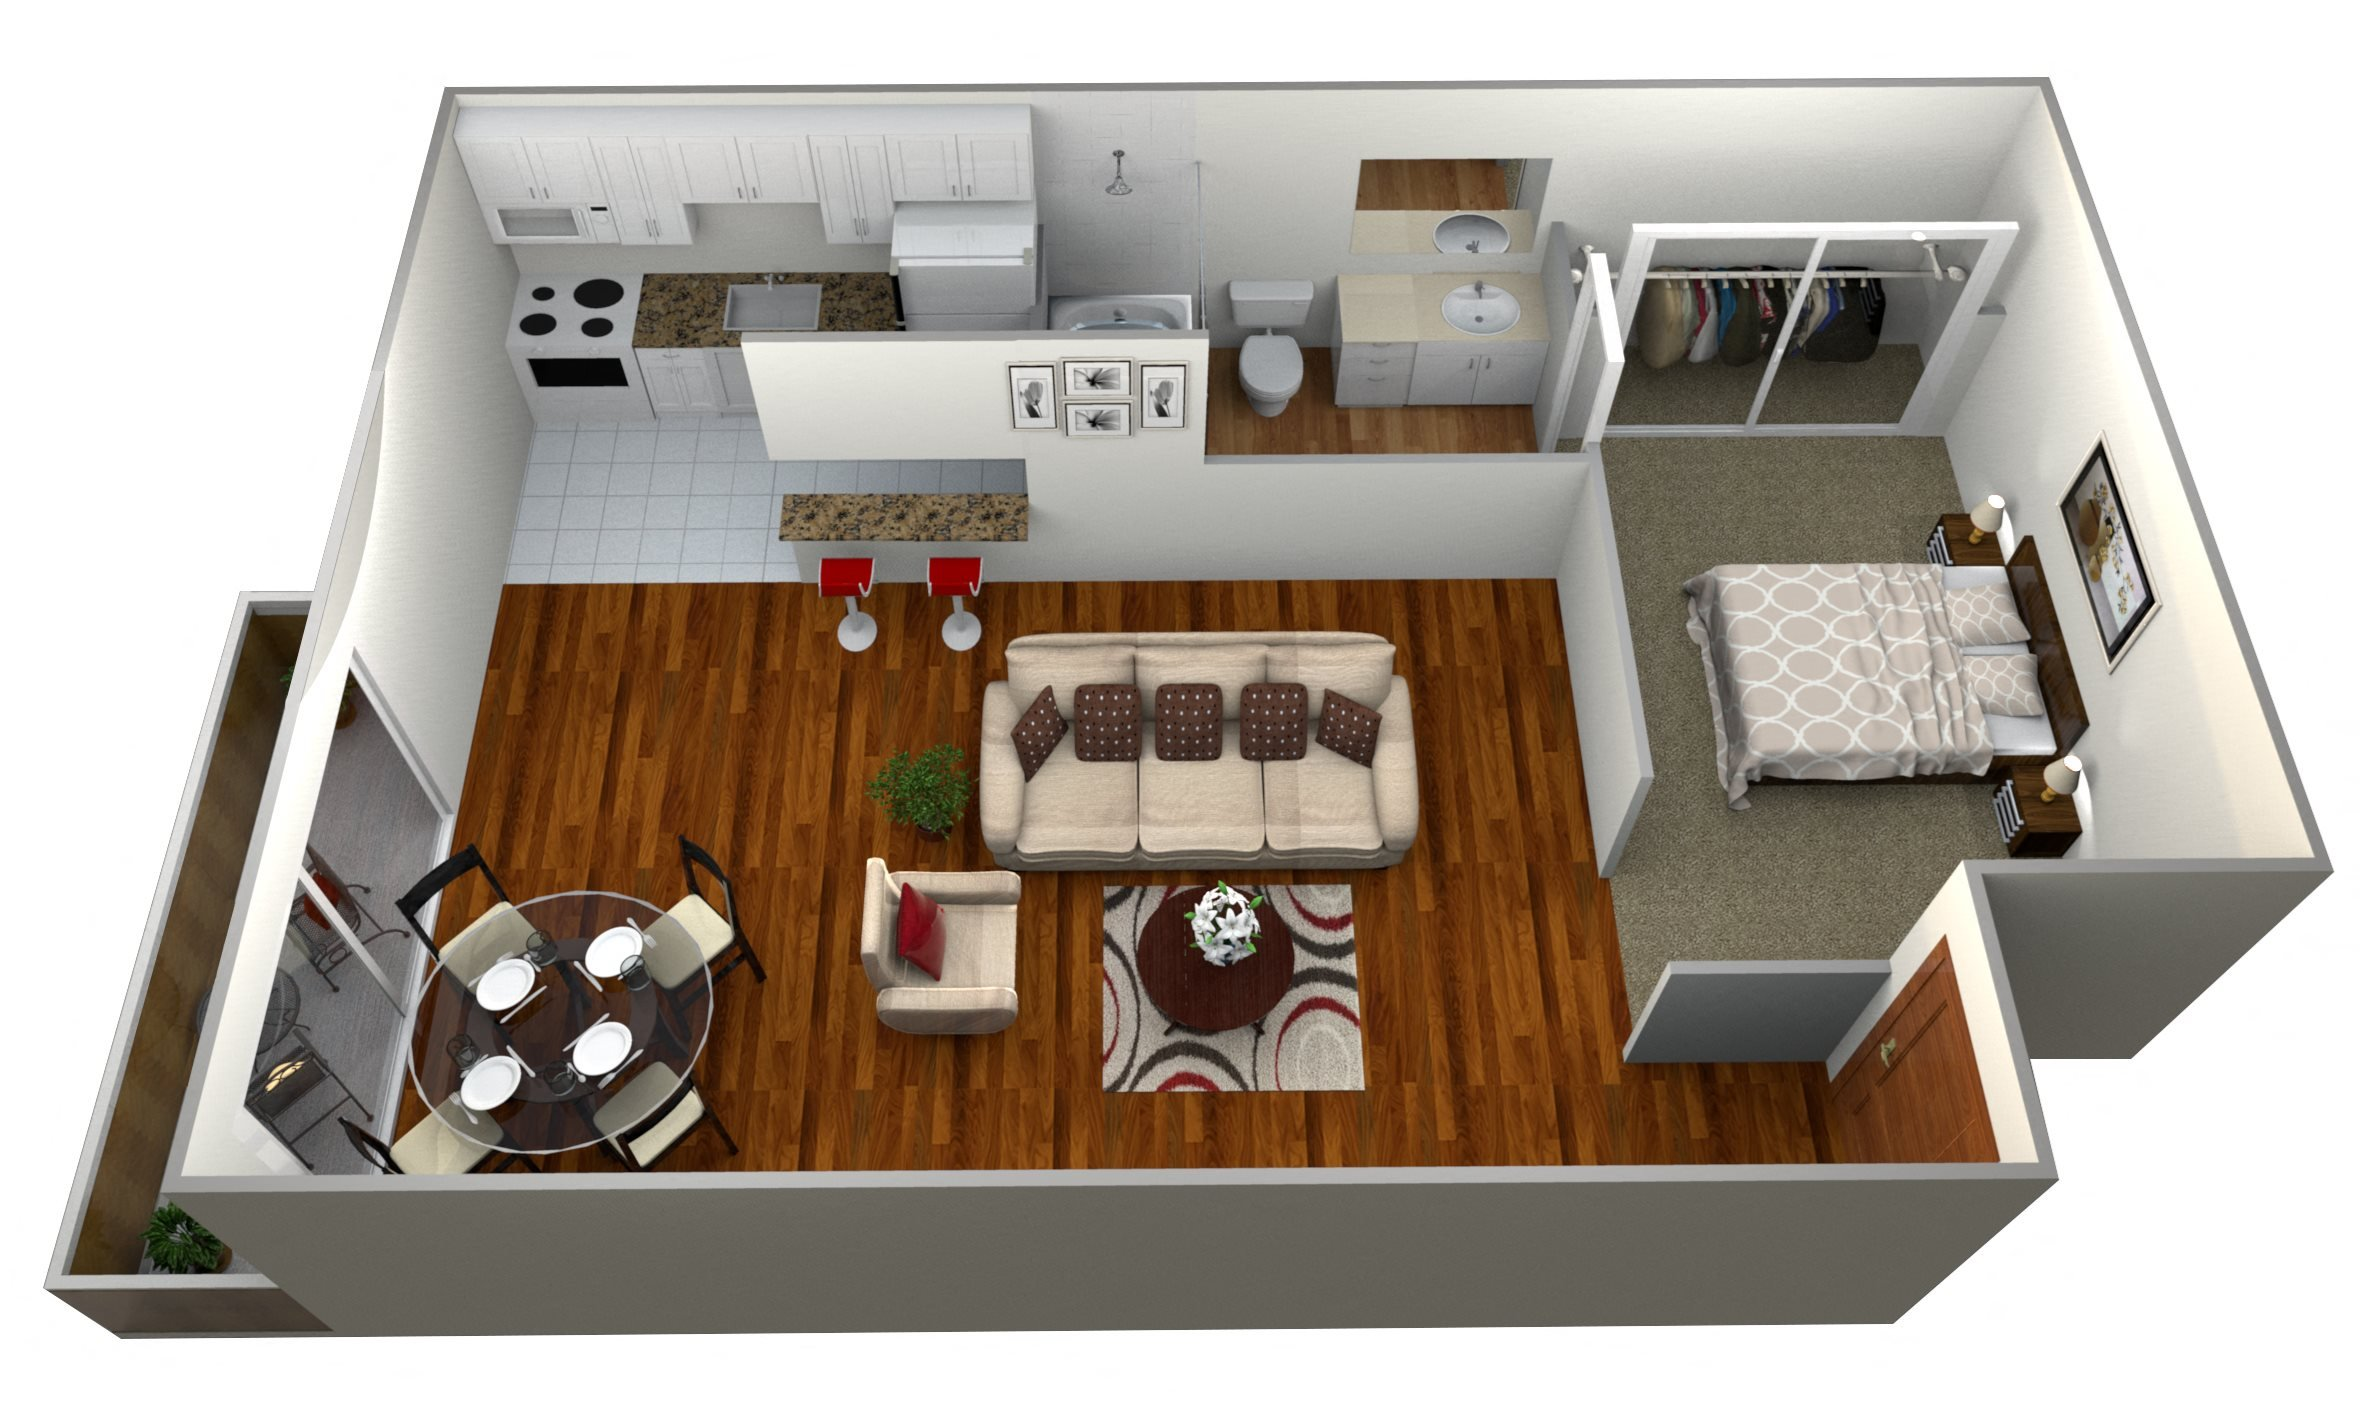 1 Bedroom Plan B Floor Plan 3